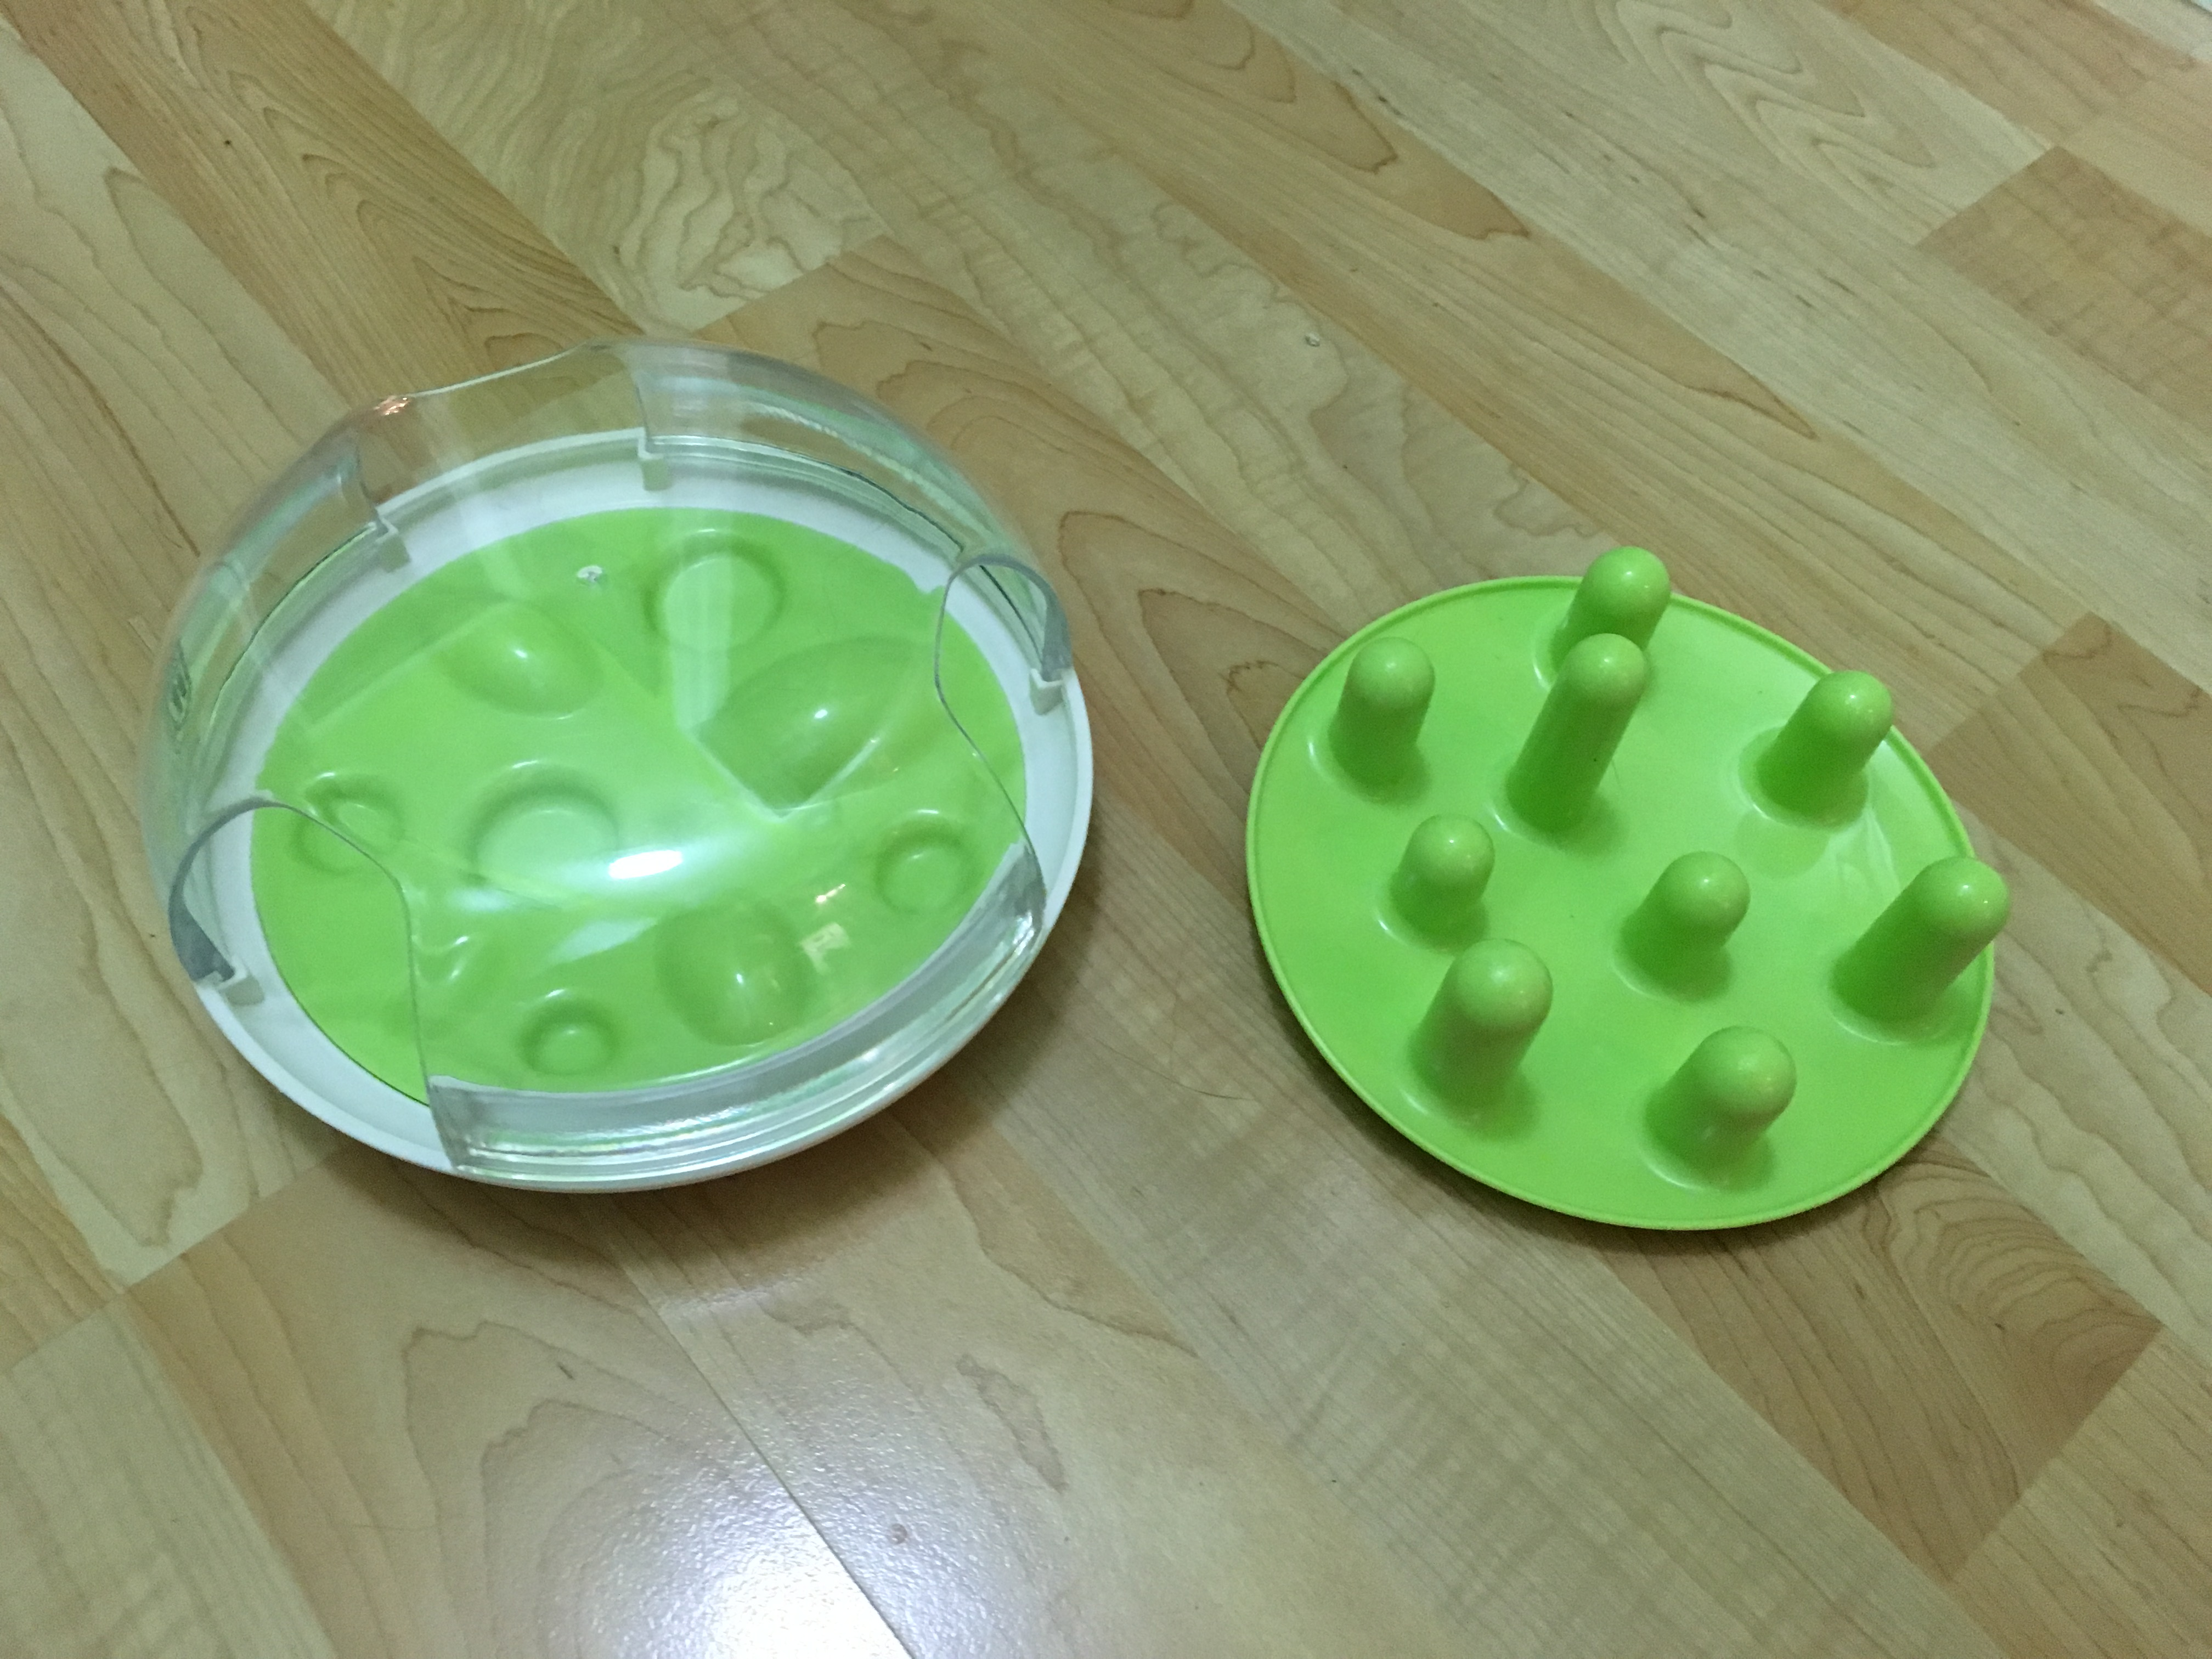 The interchangeable plates make this is two toys in one!